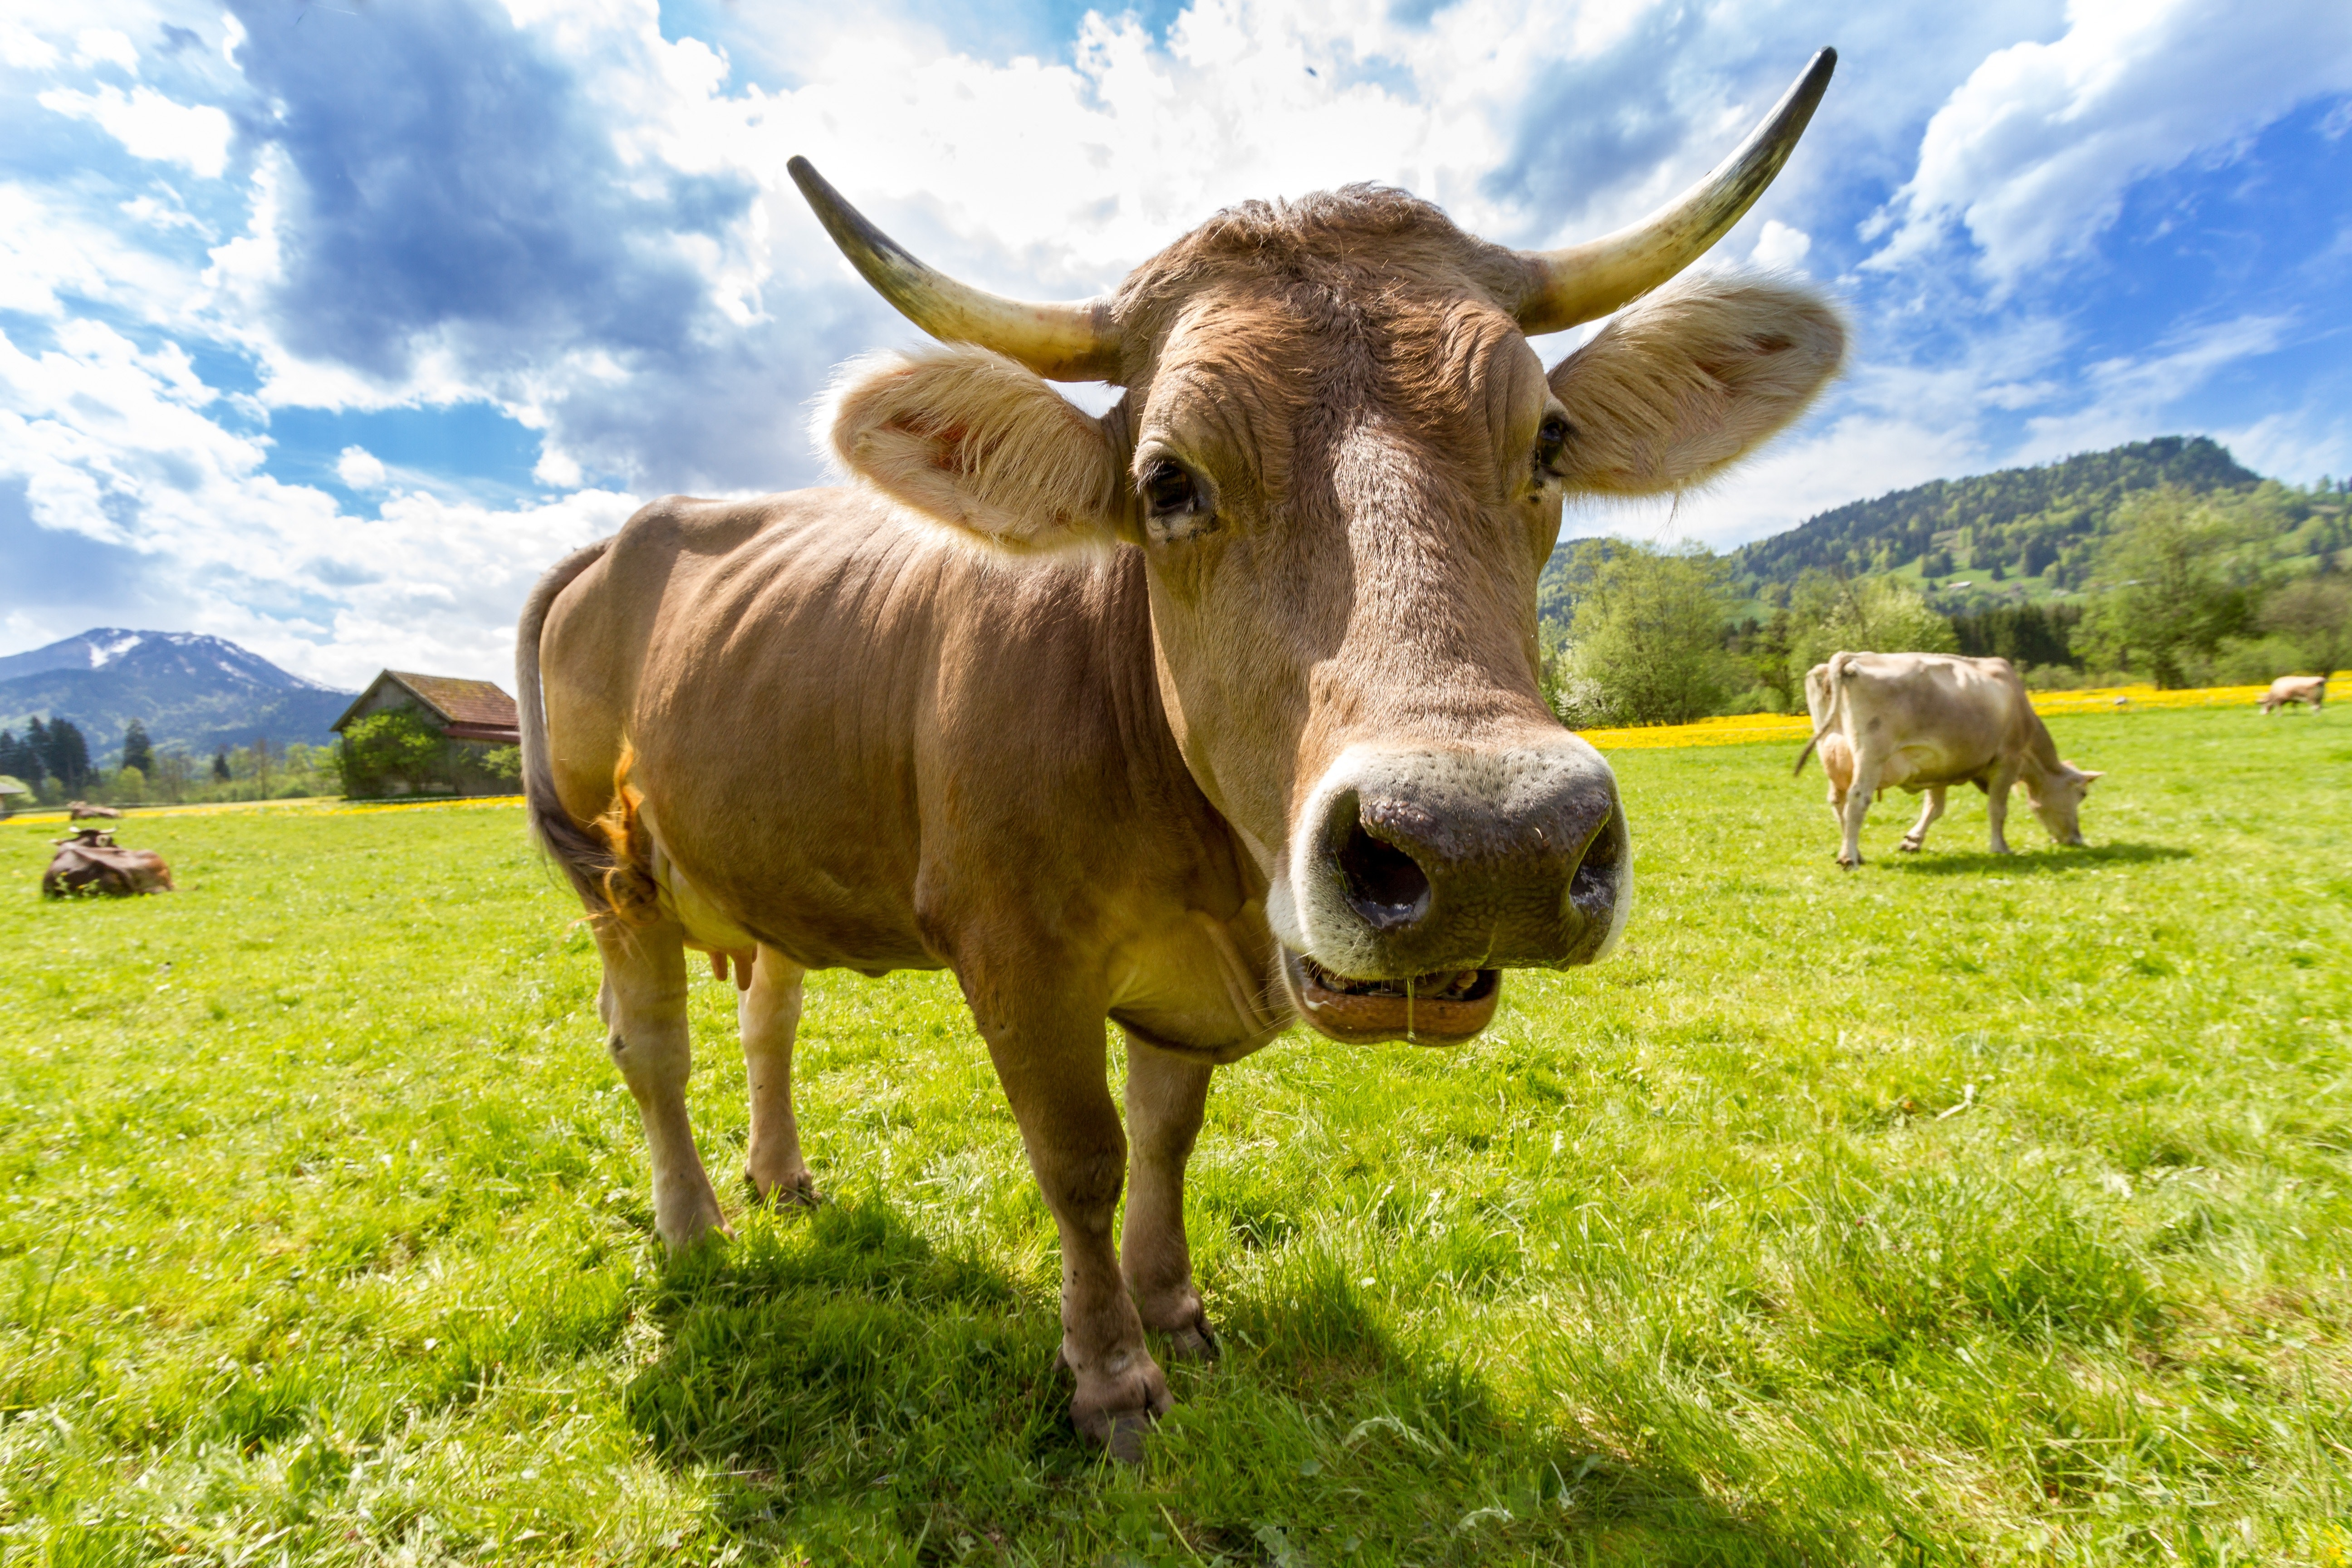 81 Peaceful Cow Pictures Pexels Free Stock Photos